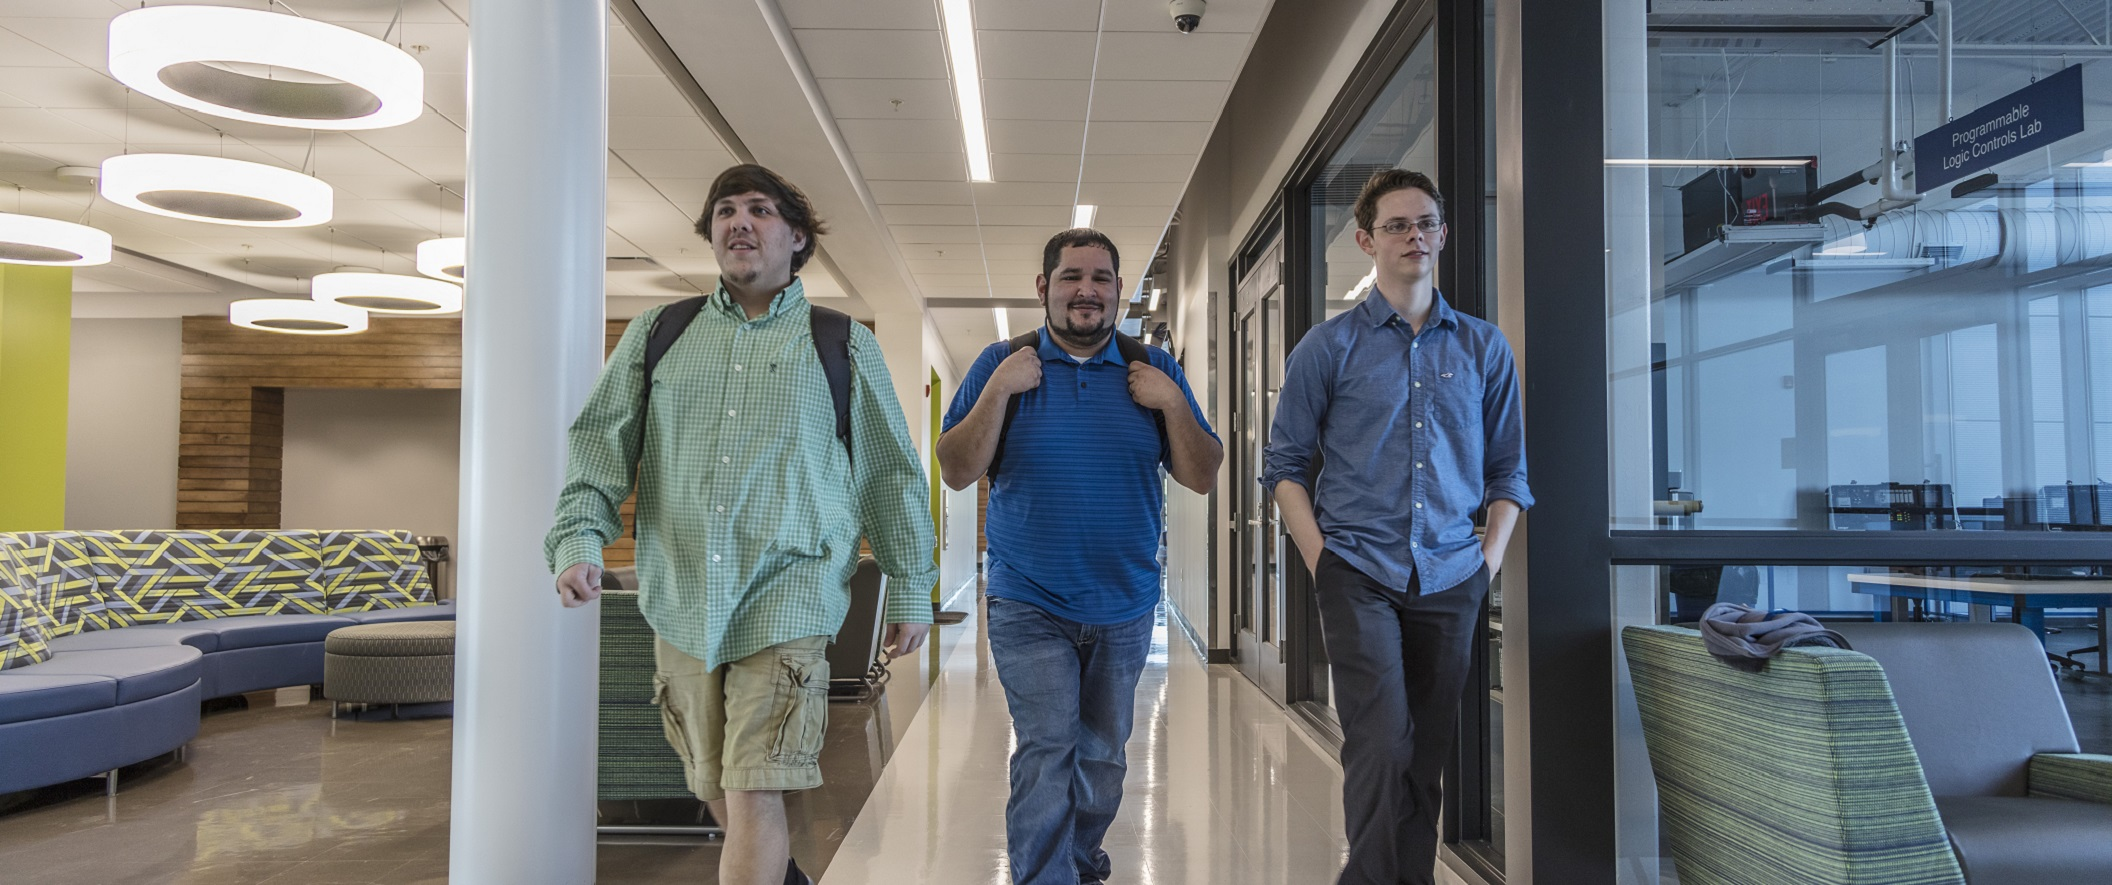 three male students walking down a hallway